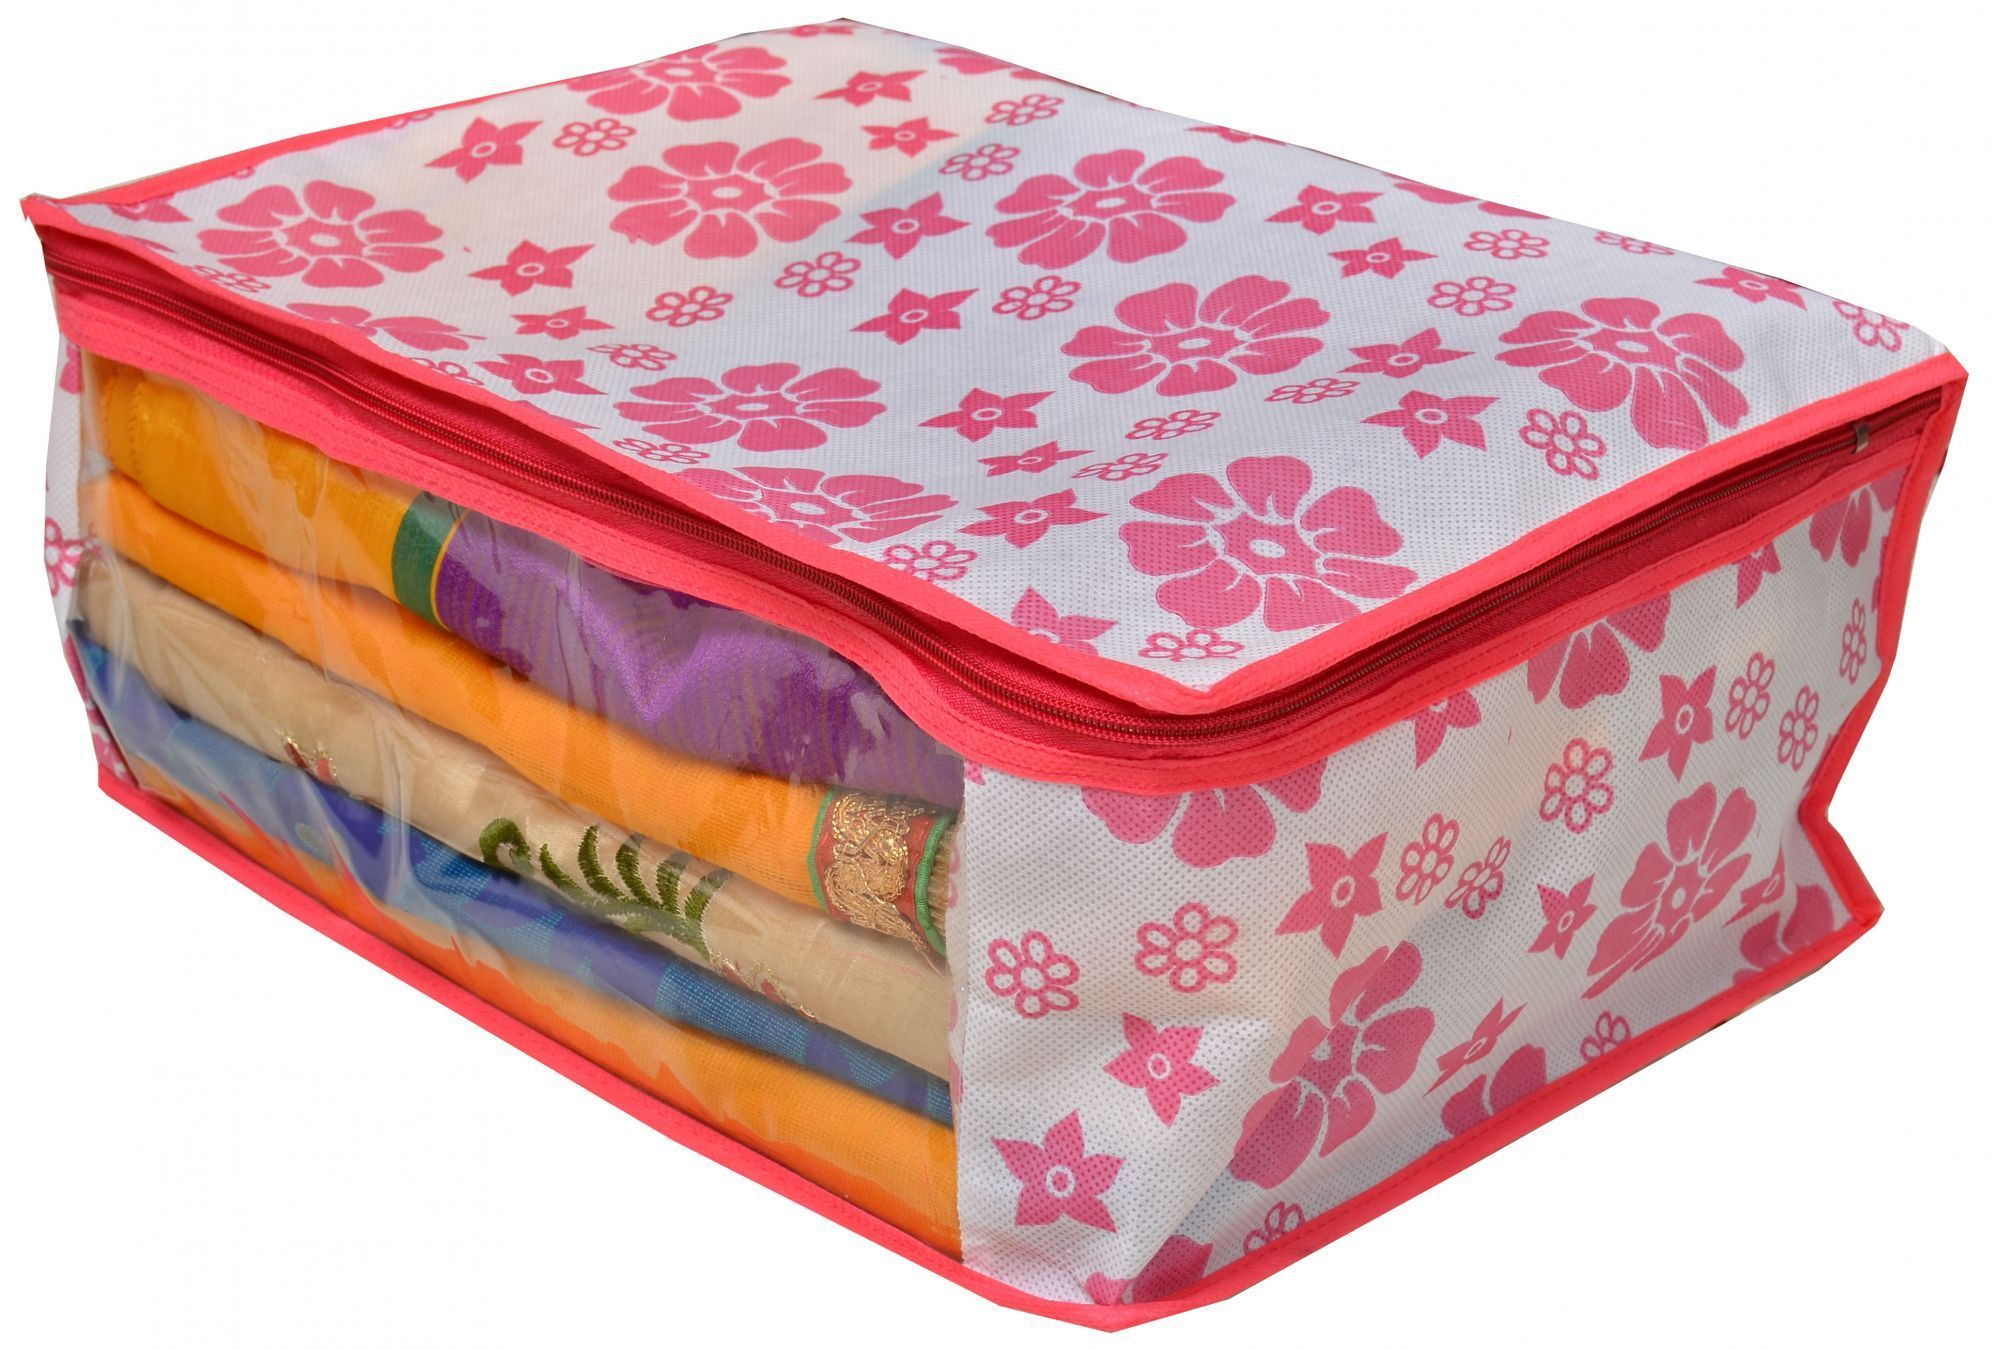 Kuber Industries Non Woven Saree Cover Pink Floral Design Set of 3 Pcs (Regular Size)